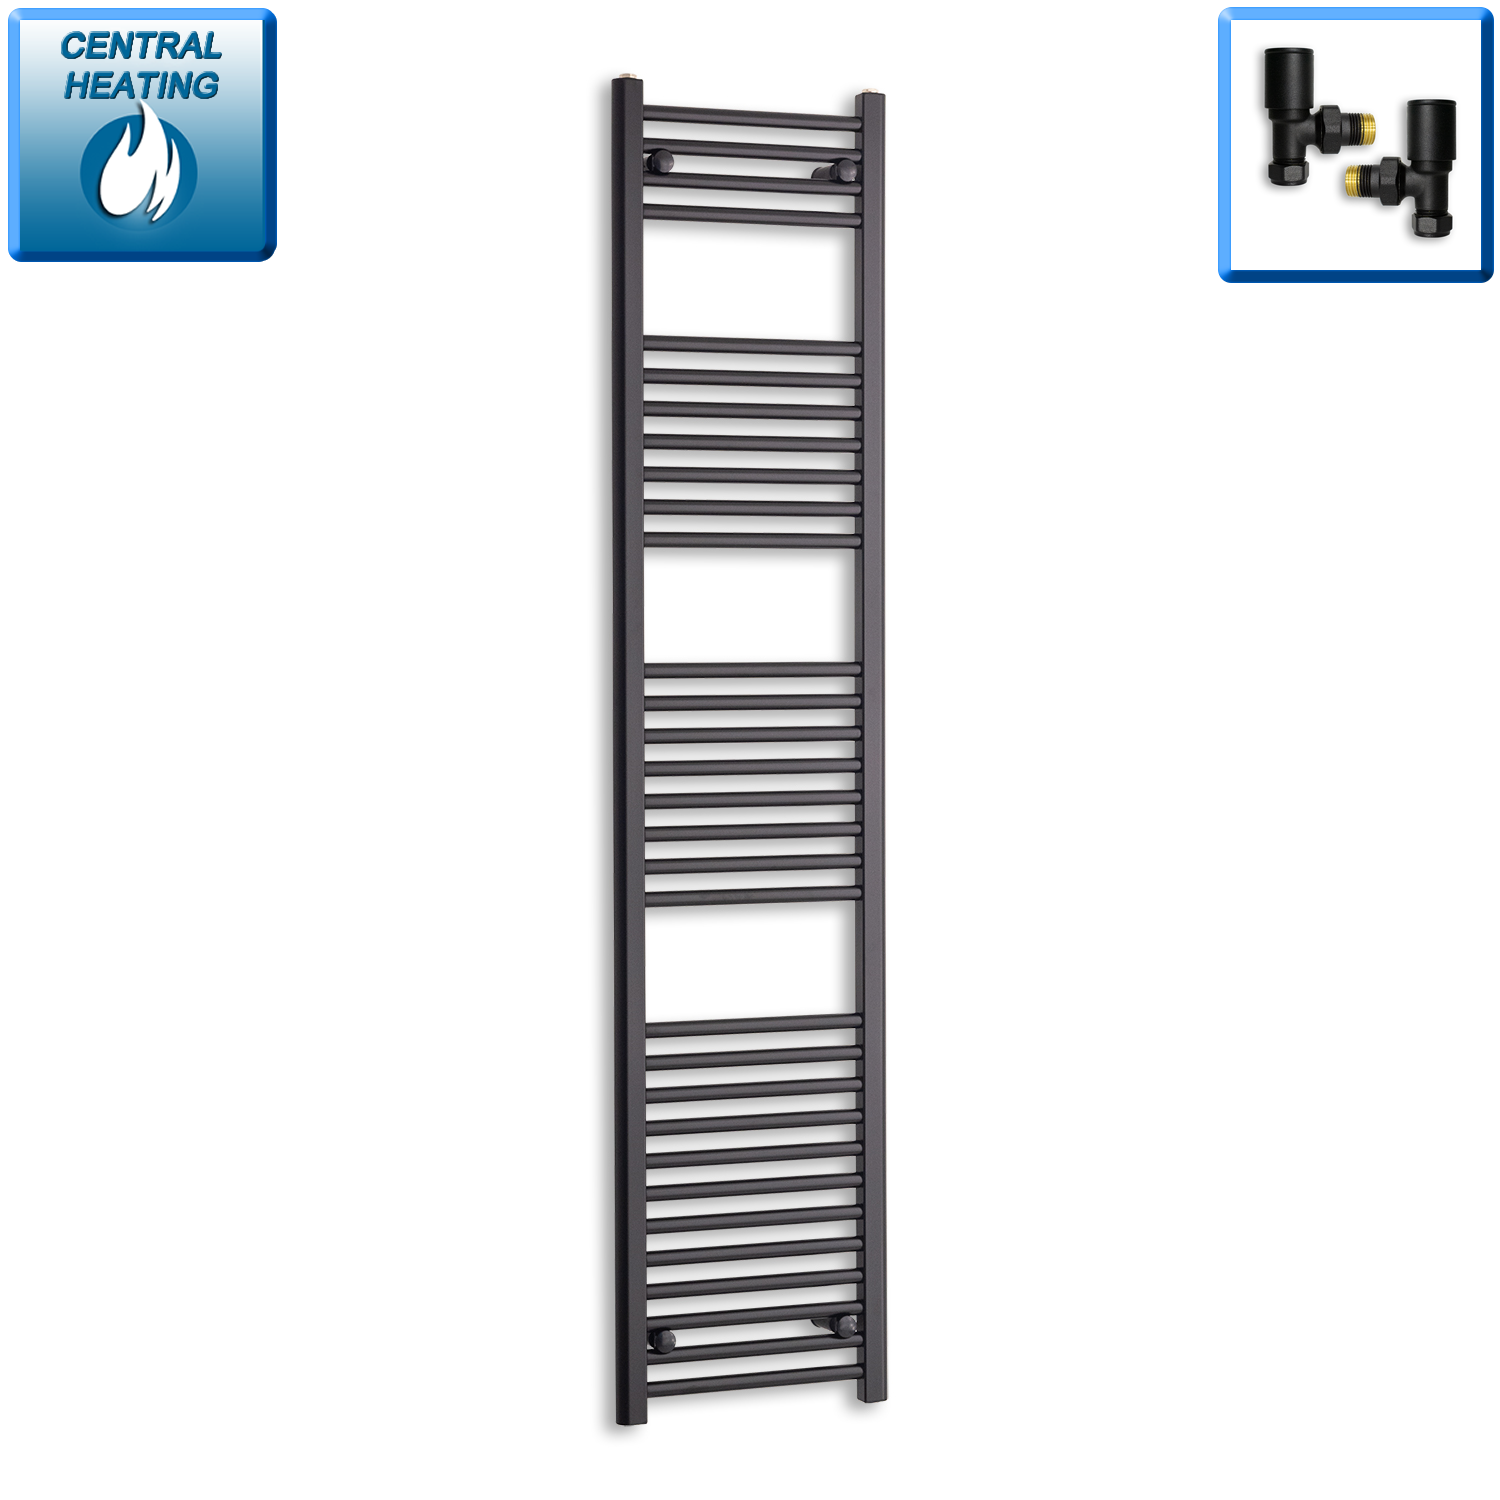 450mm Wide 1800mm High Flat Black Heated Towel Rail Radiator,With Angled Valve